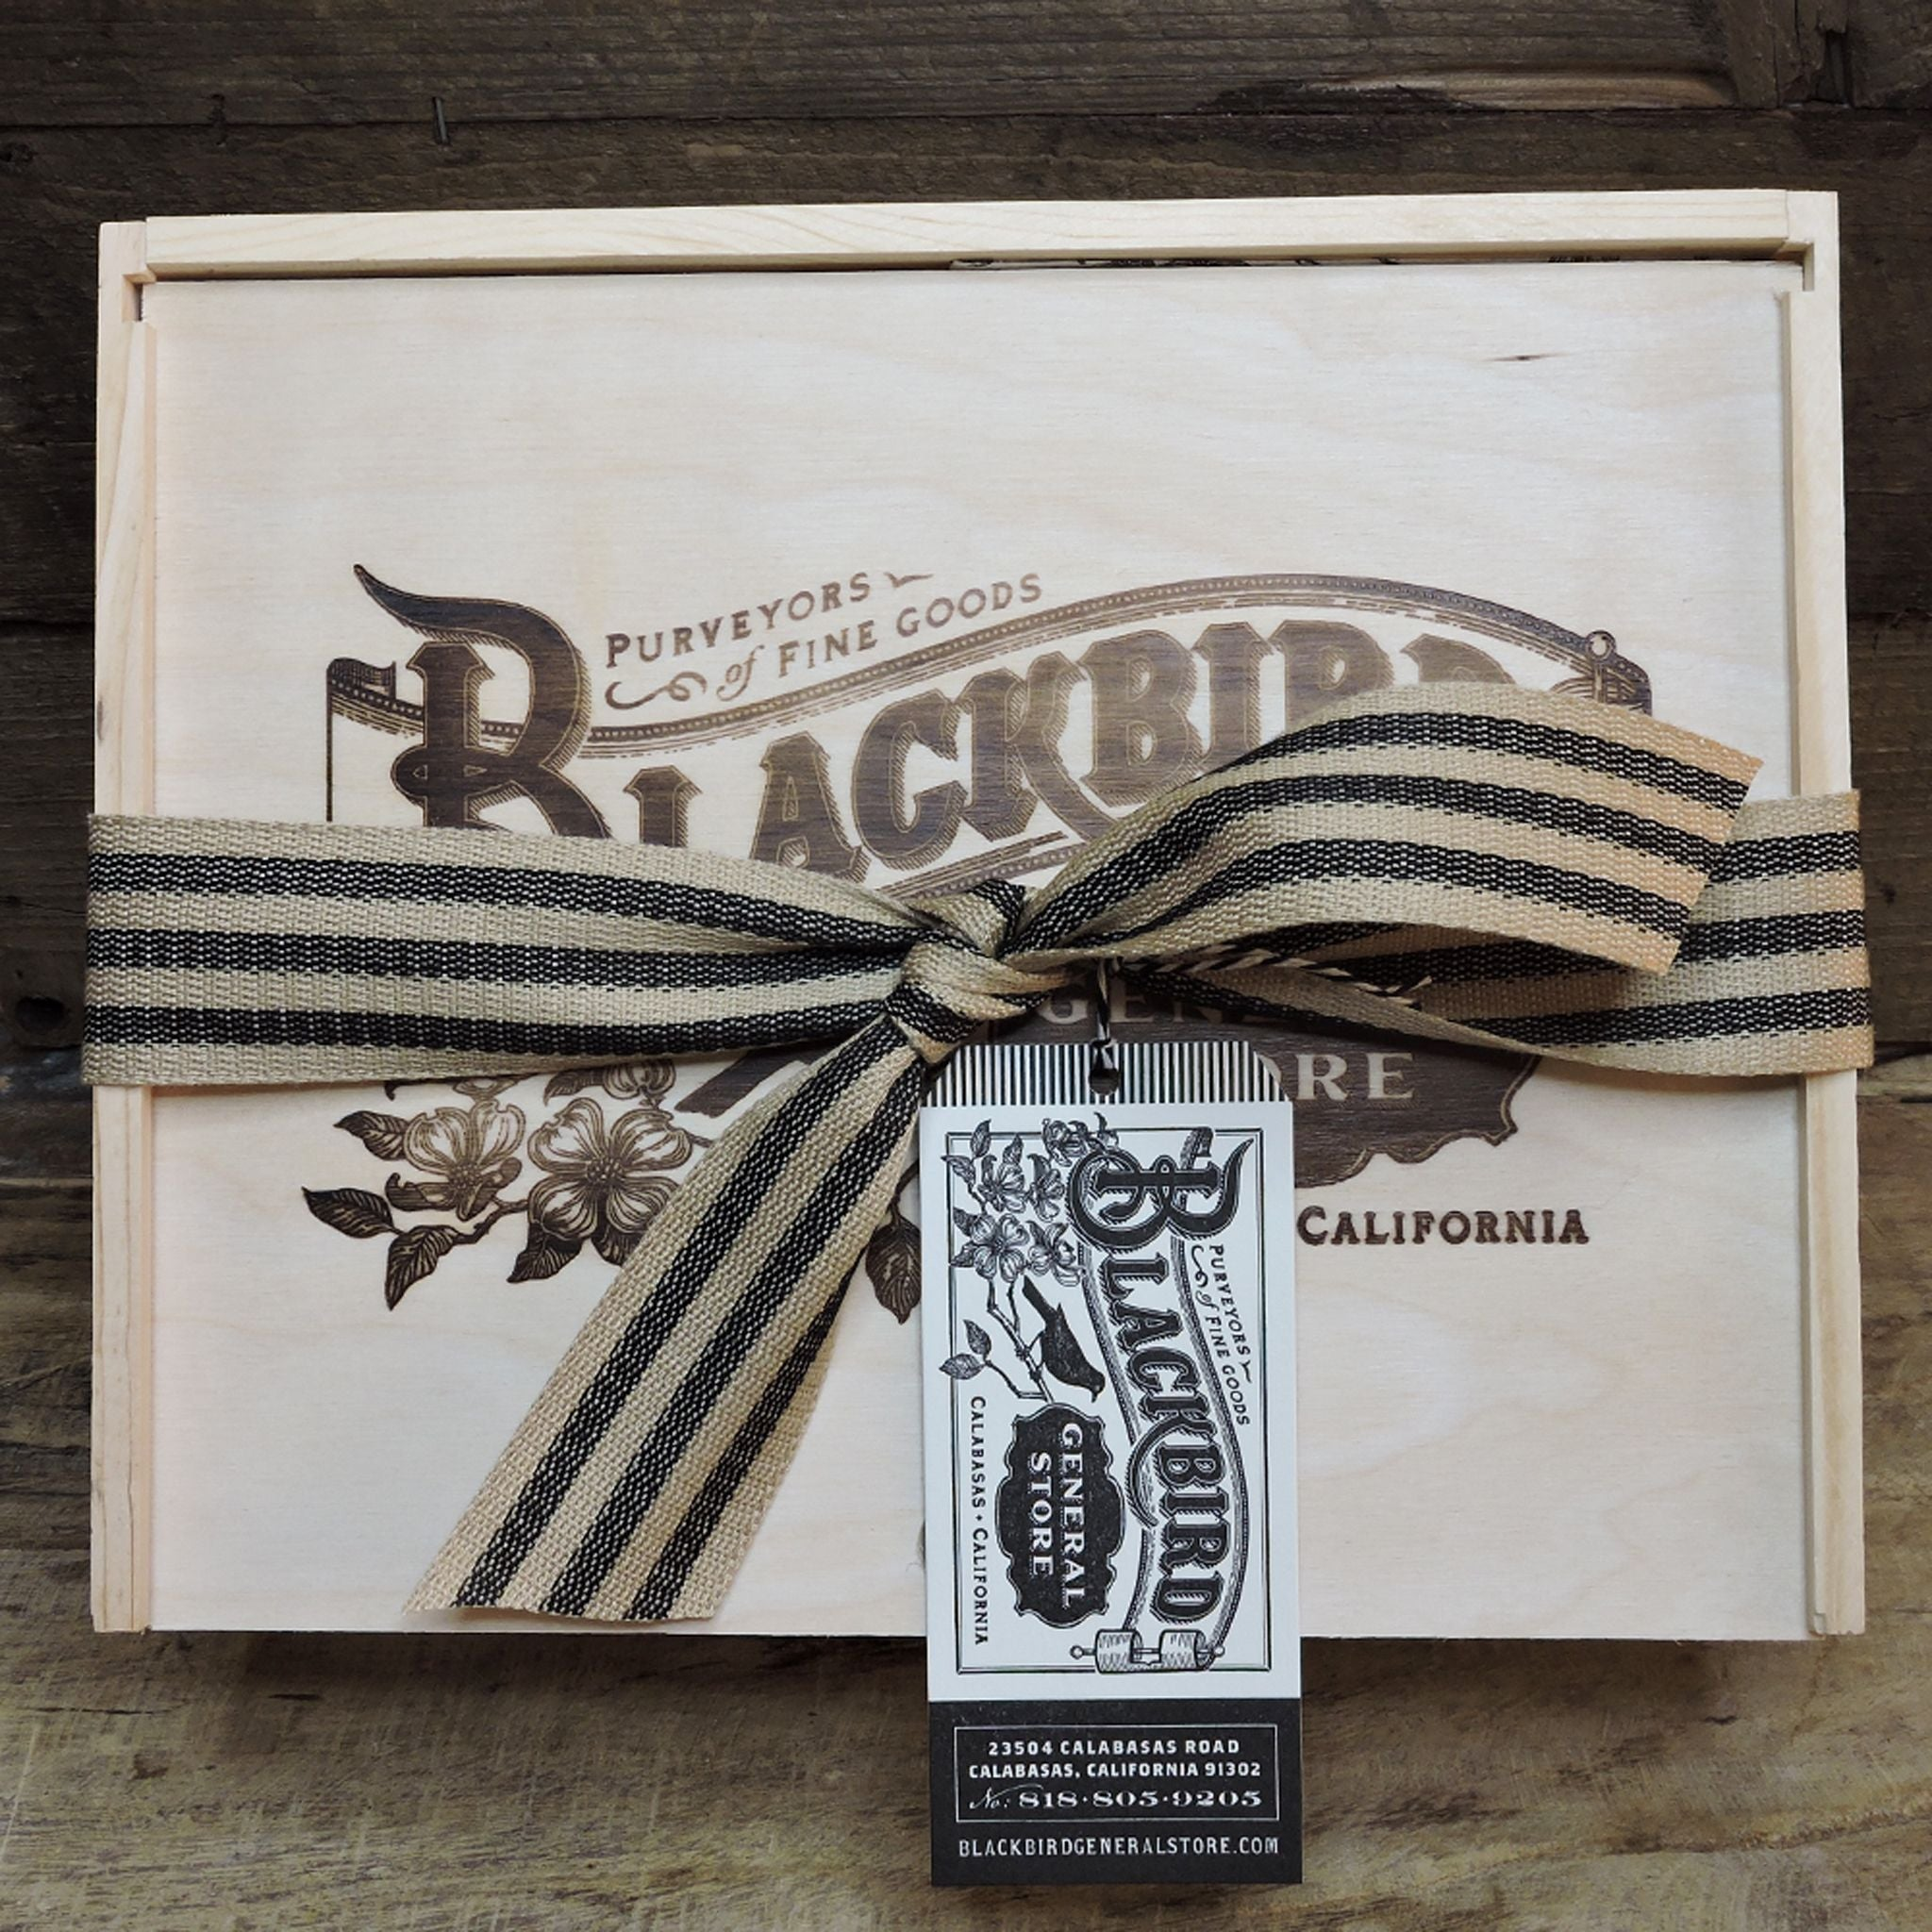 Queen Bee Gift Box - Blackbird General Store